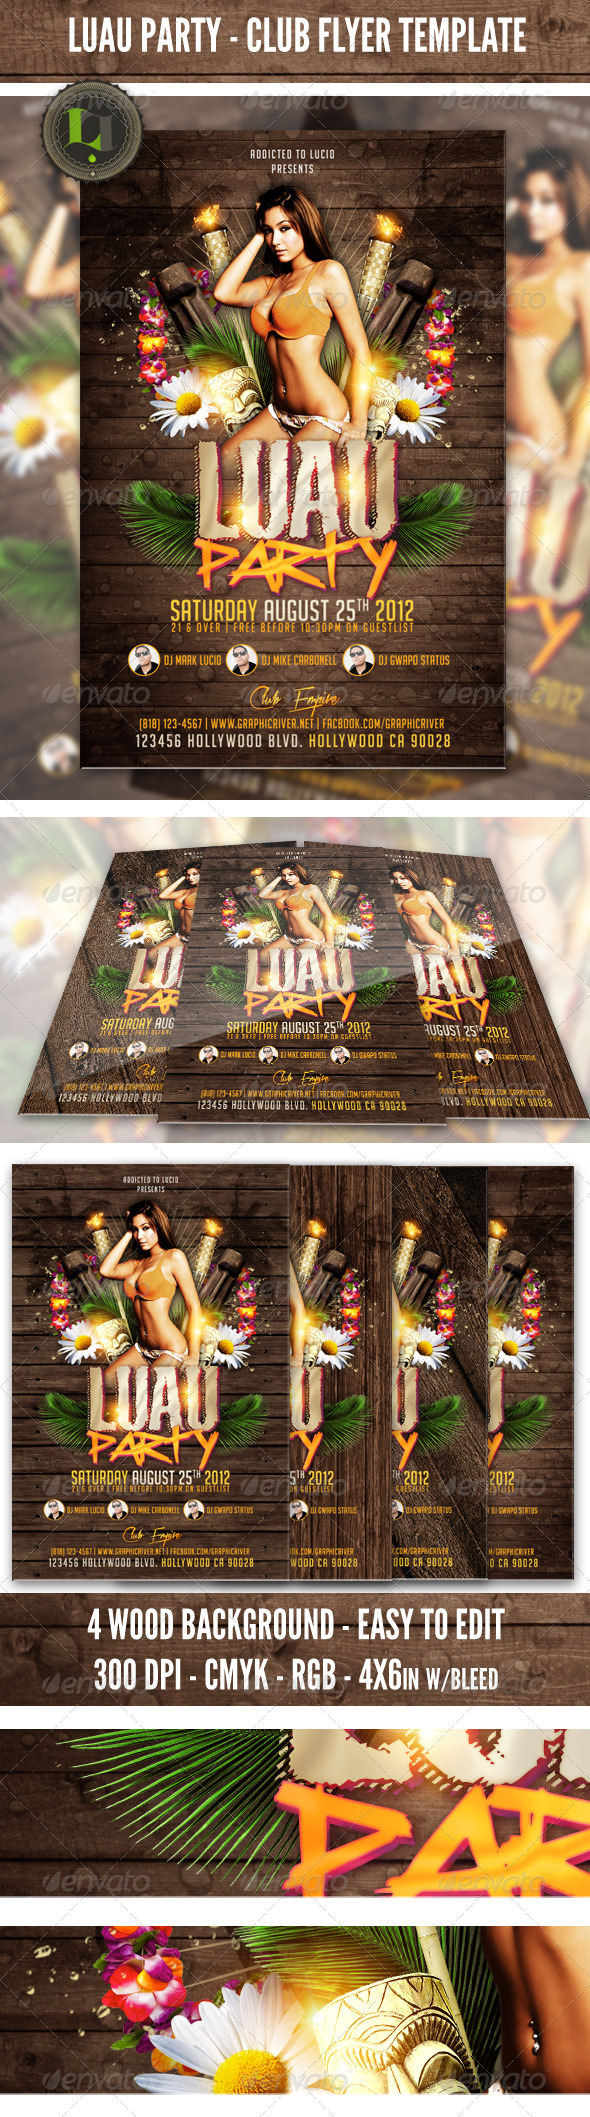 Luau Party - Club Flyer Template - Clubs & Parties Events